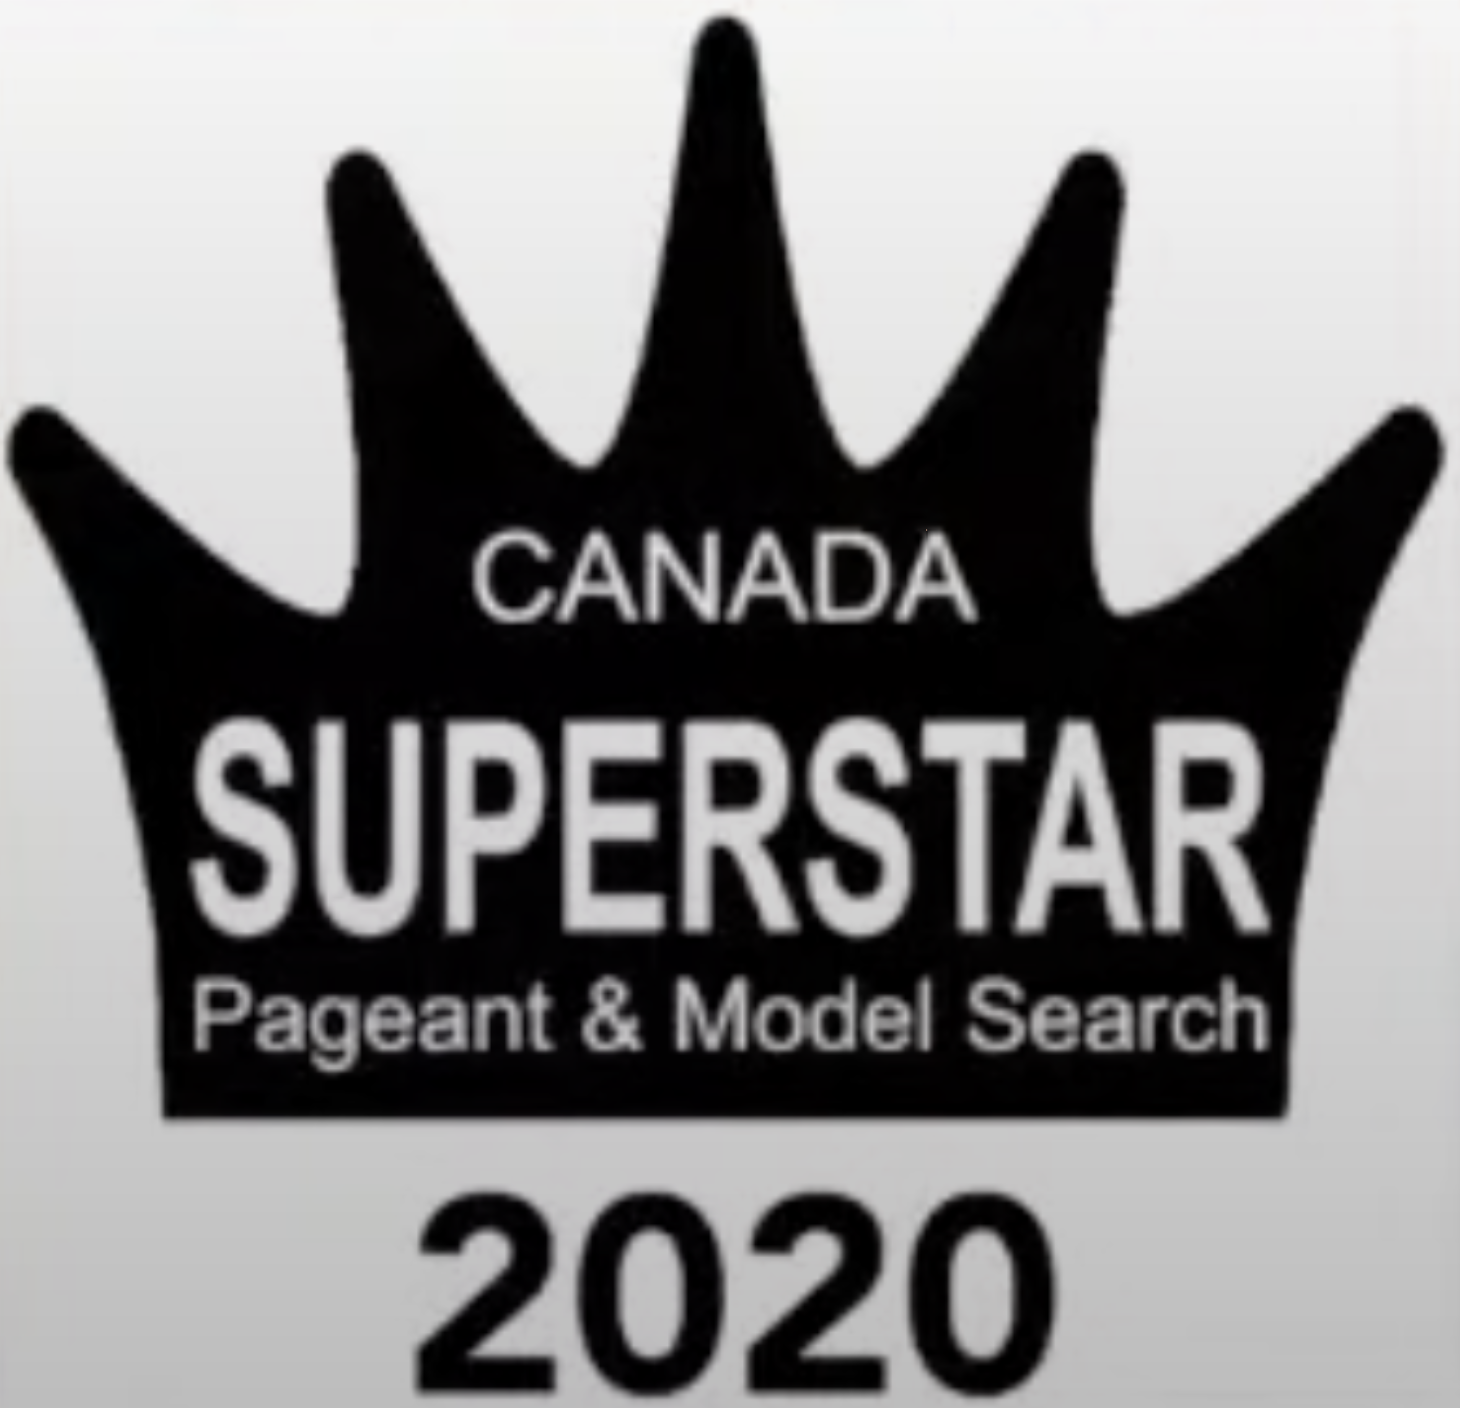 CANADA SUPERSTAR PAGEANT & MODEL SEARCH 2020